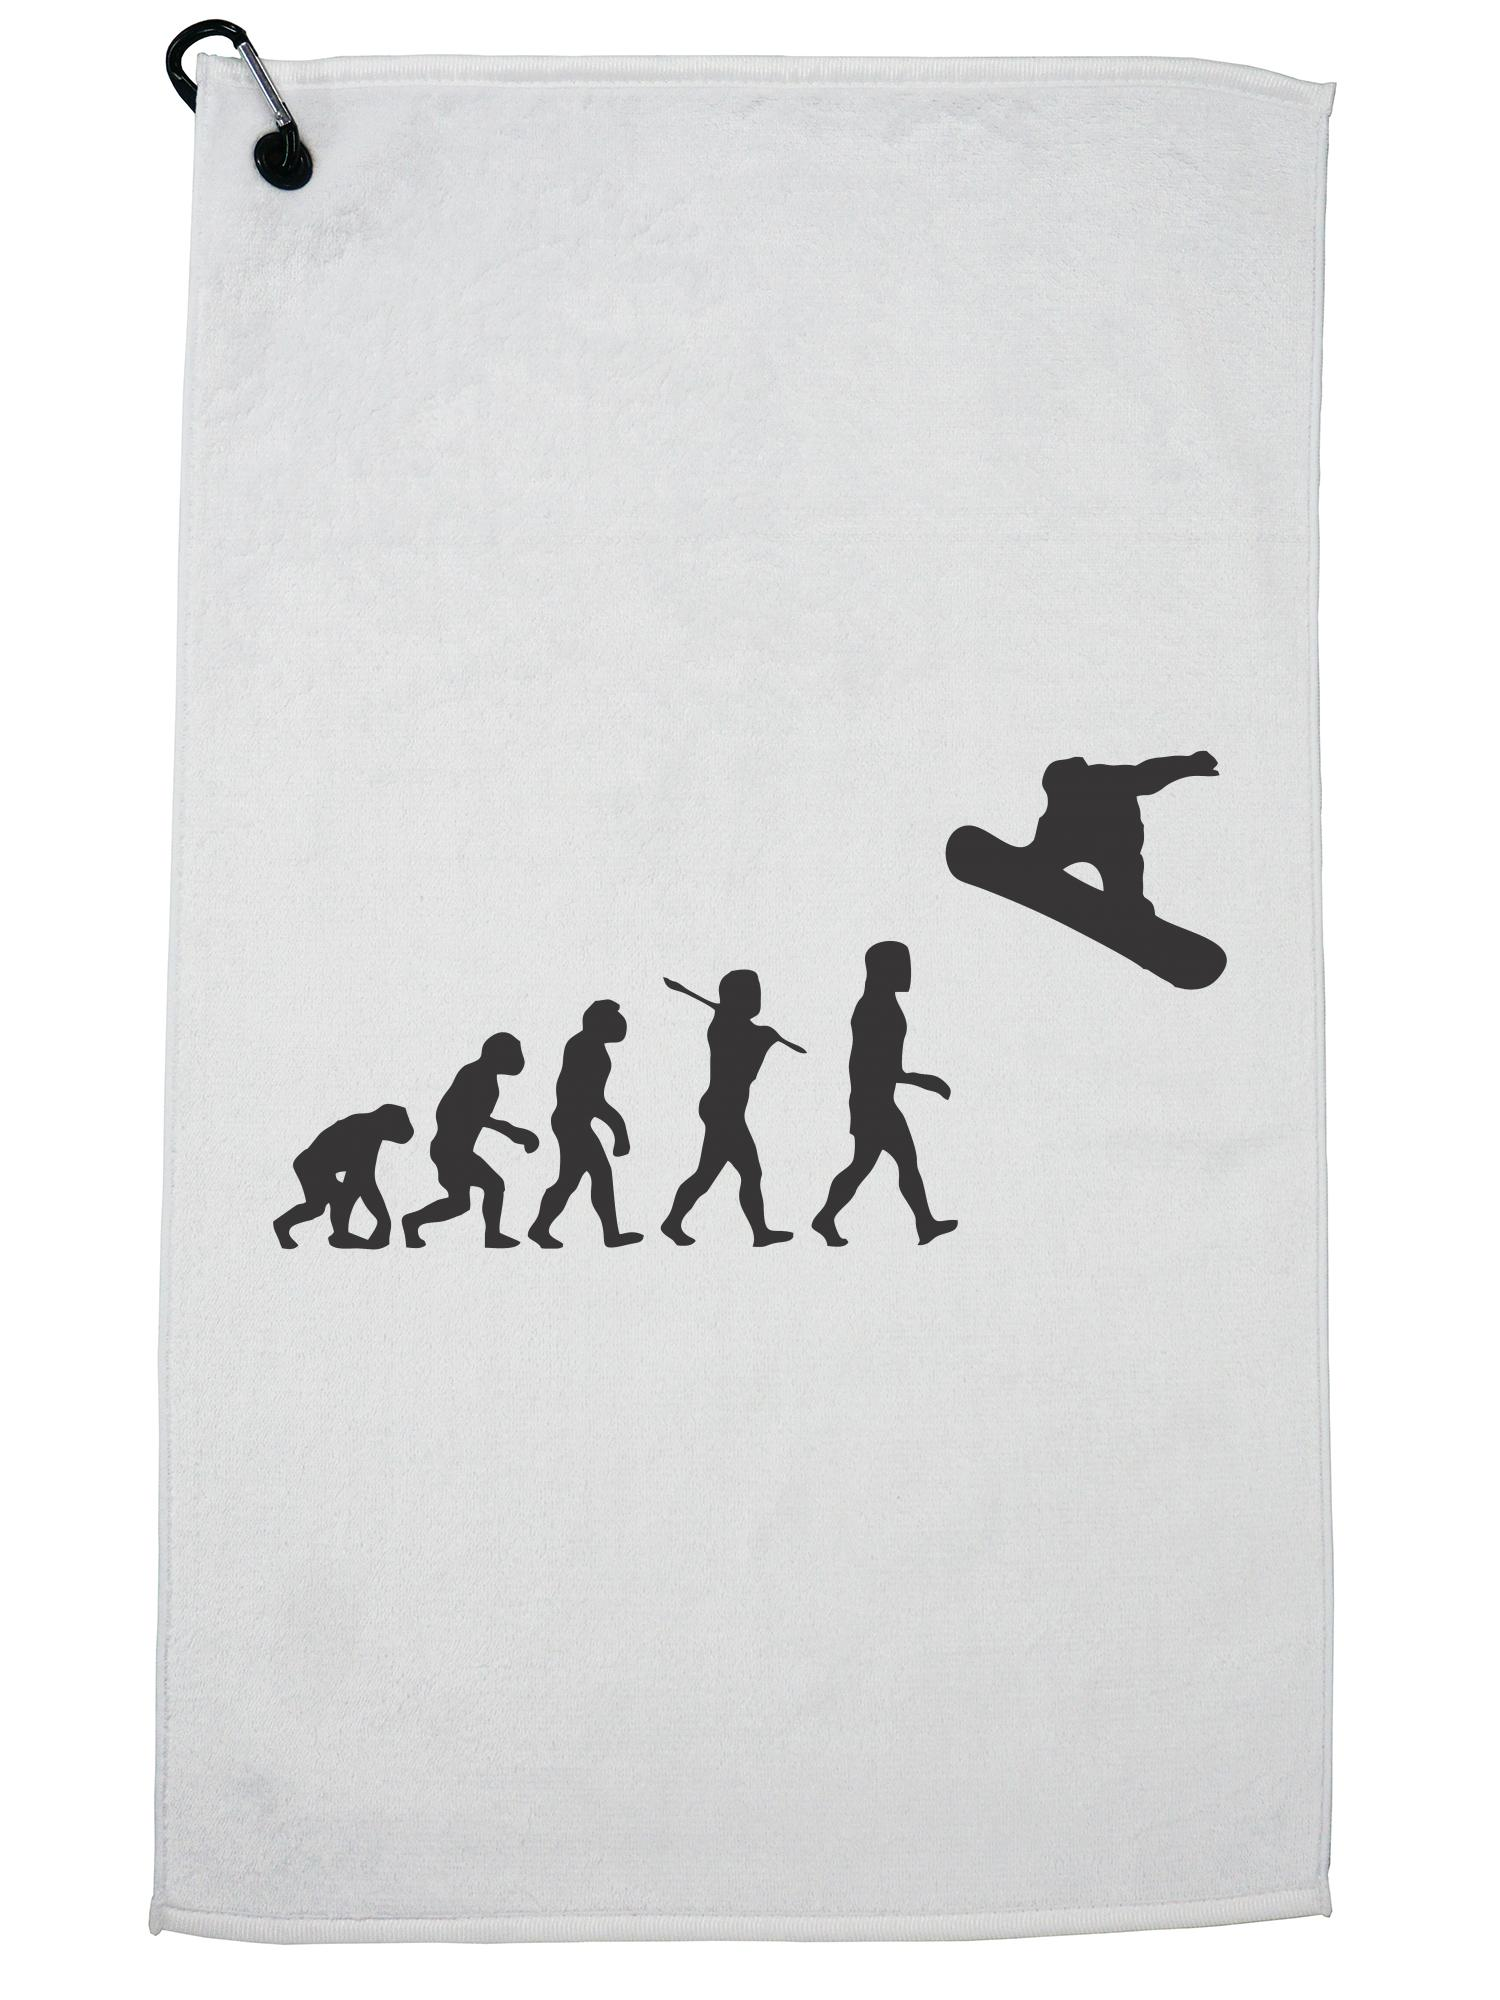 Evolution of Man Snowboarding Jumping Silhouette Golf Towel with Carabiner Clip by Hollywood Thread